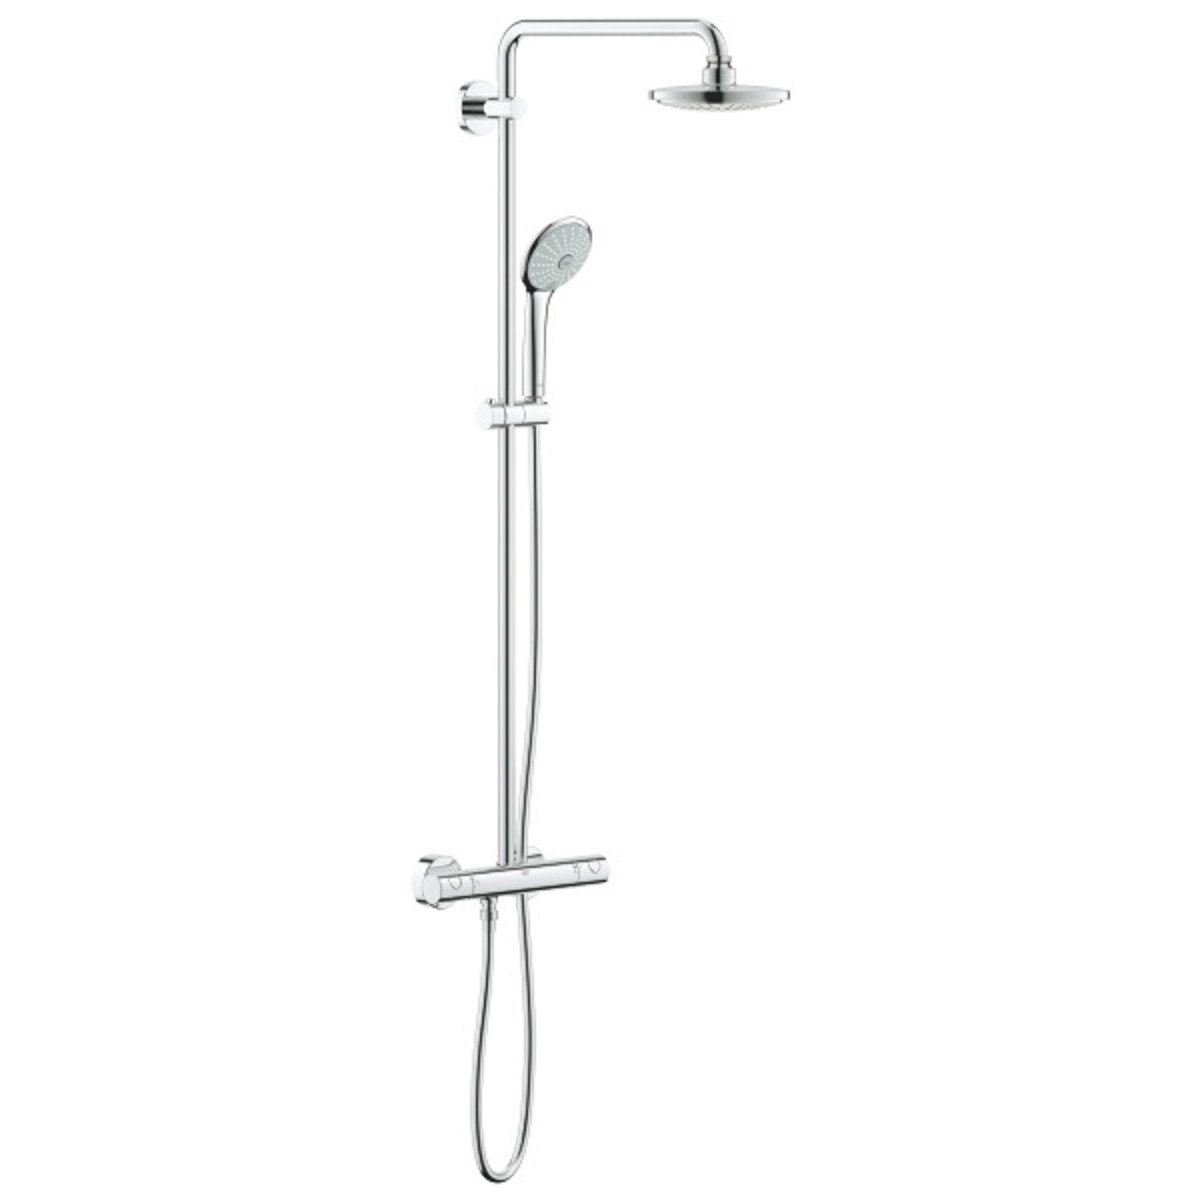 Grohe Euphoria Douchesysteem 180 Chroom Grohe Euphoria 180 Regendouchesysteem Met 18cm Hoofddouche Chroom